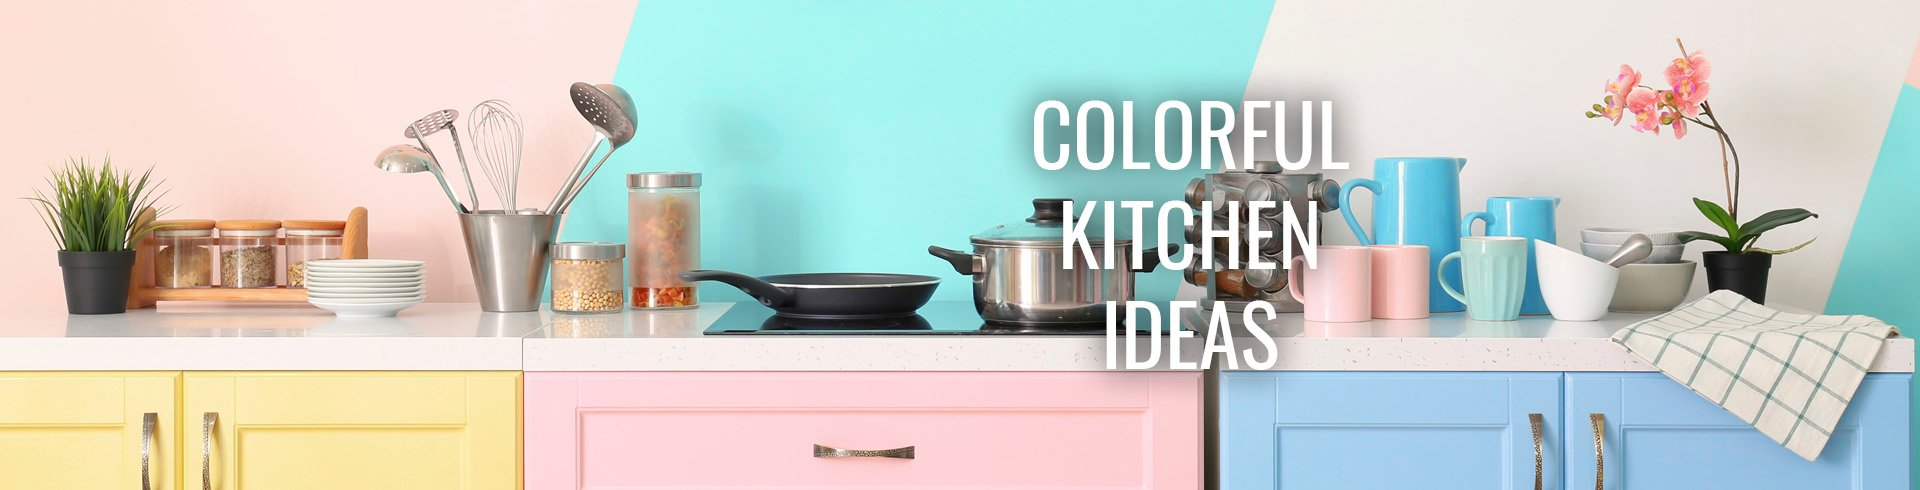 Colorful Kitchen Ideas | RC Willey Blog on colorful kitchen islands, colorful kitchen accessories, colorful small kitchens, colorful kitchen decorations, colorful kitchen utensils, colorful kitchen themes, colorful traditional kitchen, colorful rug runners for kitchen, colorful kitchen art, colorful bedding ideas, colorful master bedroom ideas, colorful white kitchens, colorful country kitchen, colorful kitchen artwork, colorful kitchen supplies, colorful dining room ideas, colorful kitchen backsplash, colorful kitchen countertops, colorful kitchen cabinets, colorful kitchen appliances,